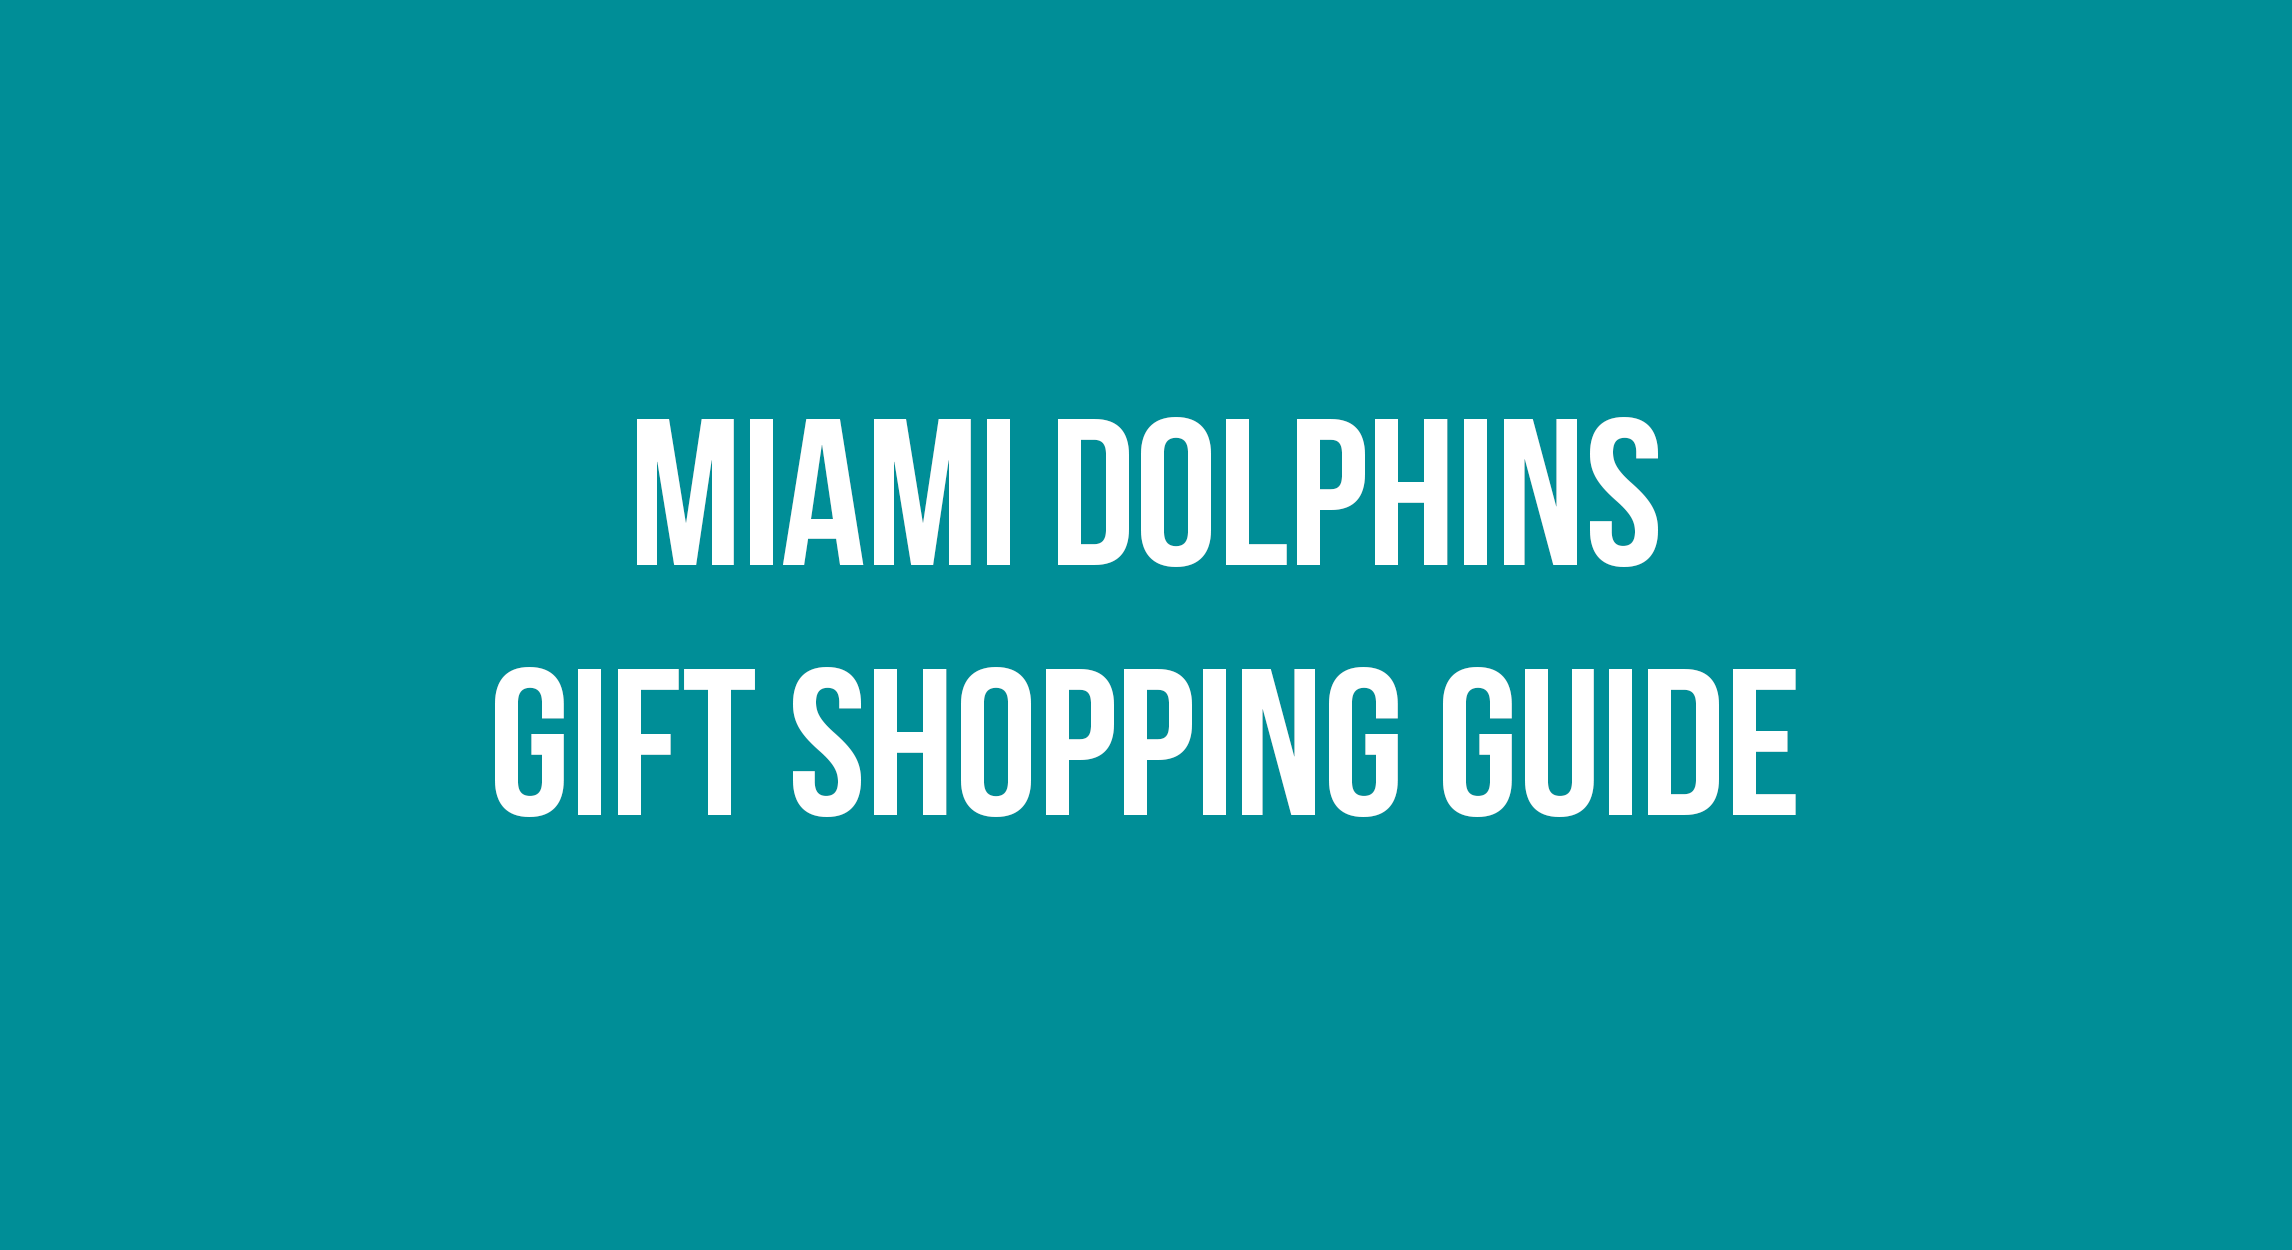 miami dolphins gifts